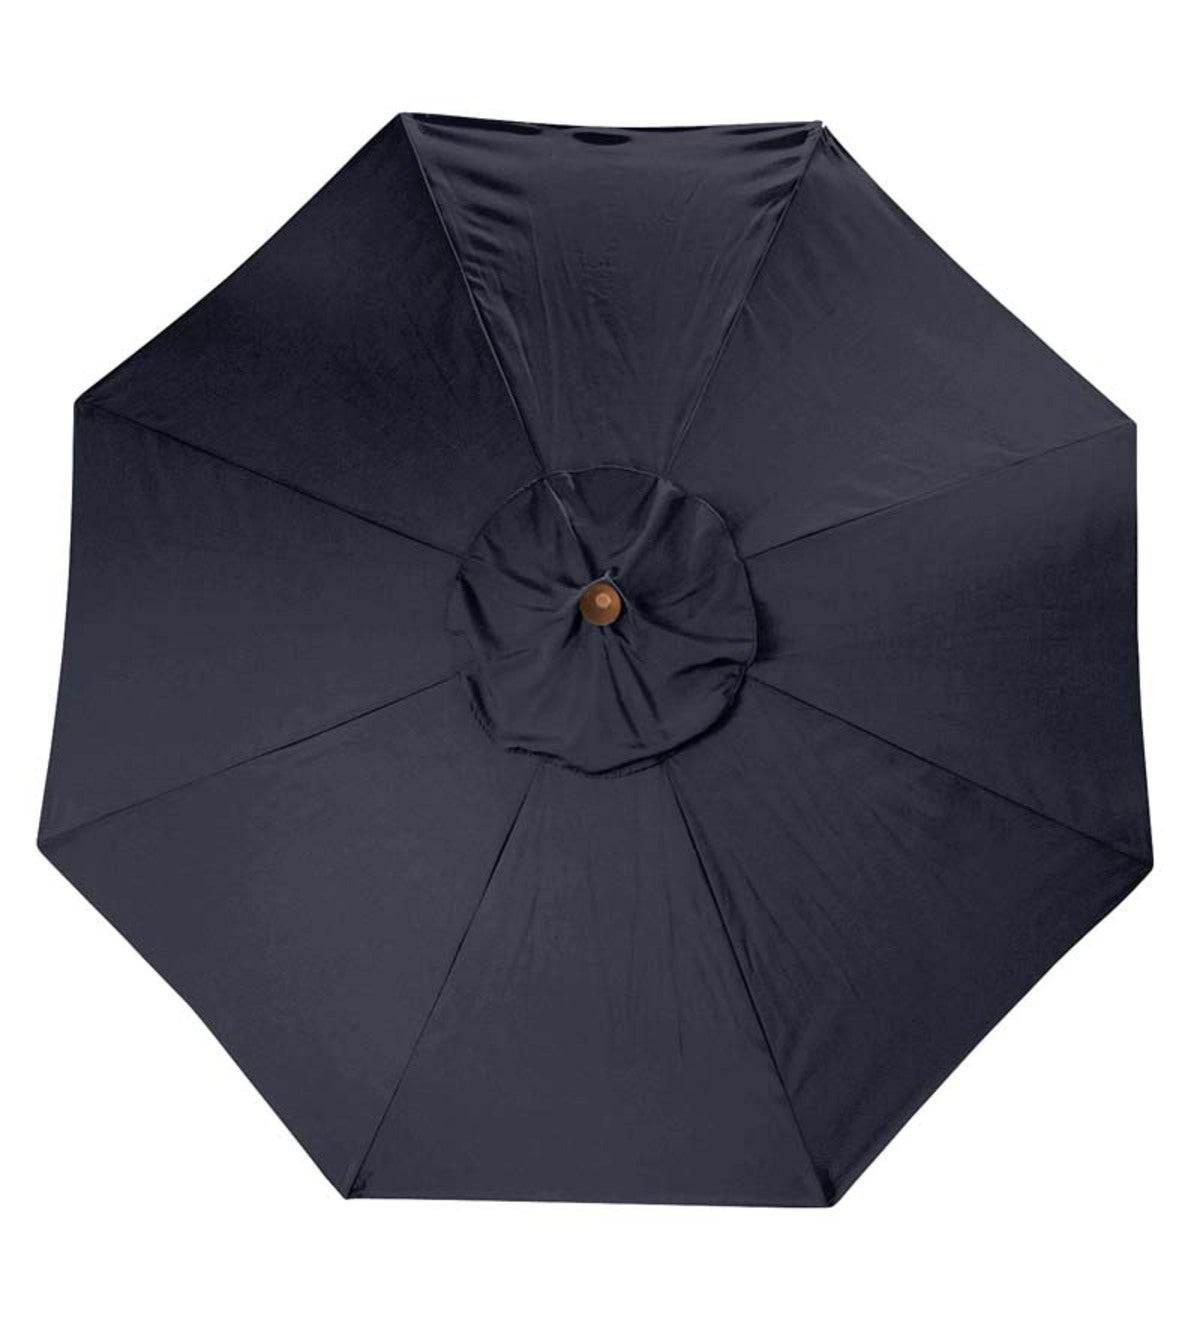 11' Deluxe Sunbrella™ Market Umbrella - Black